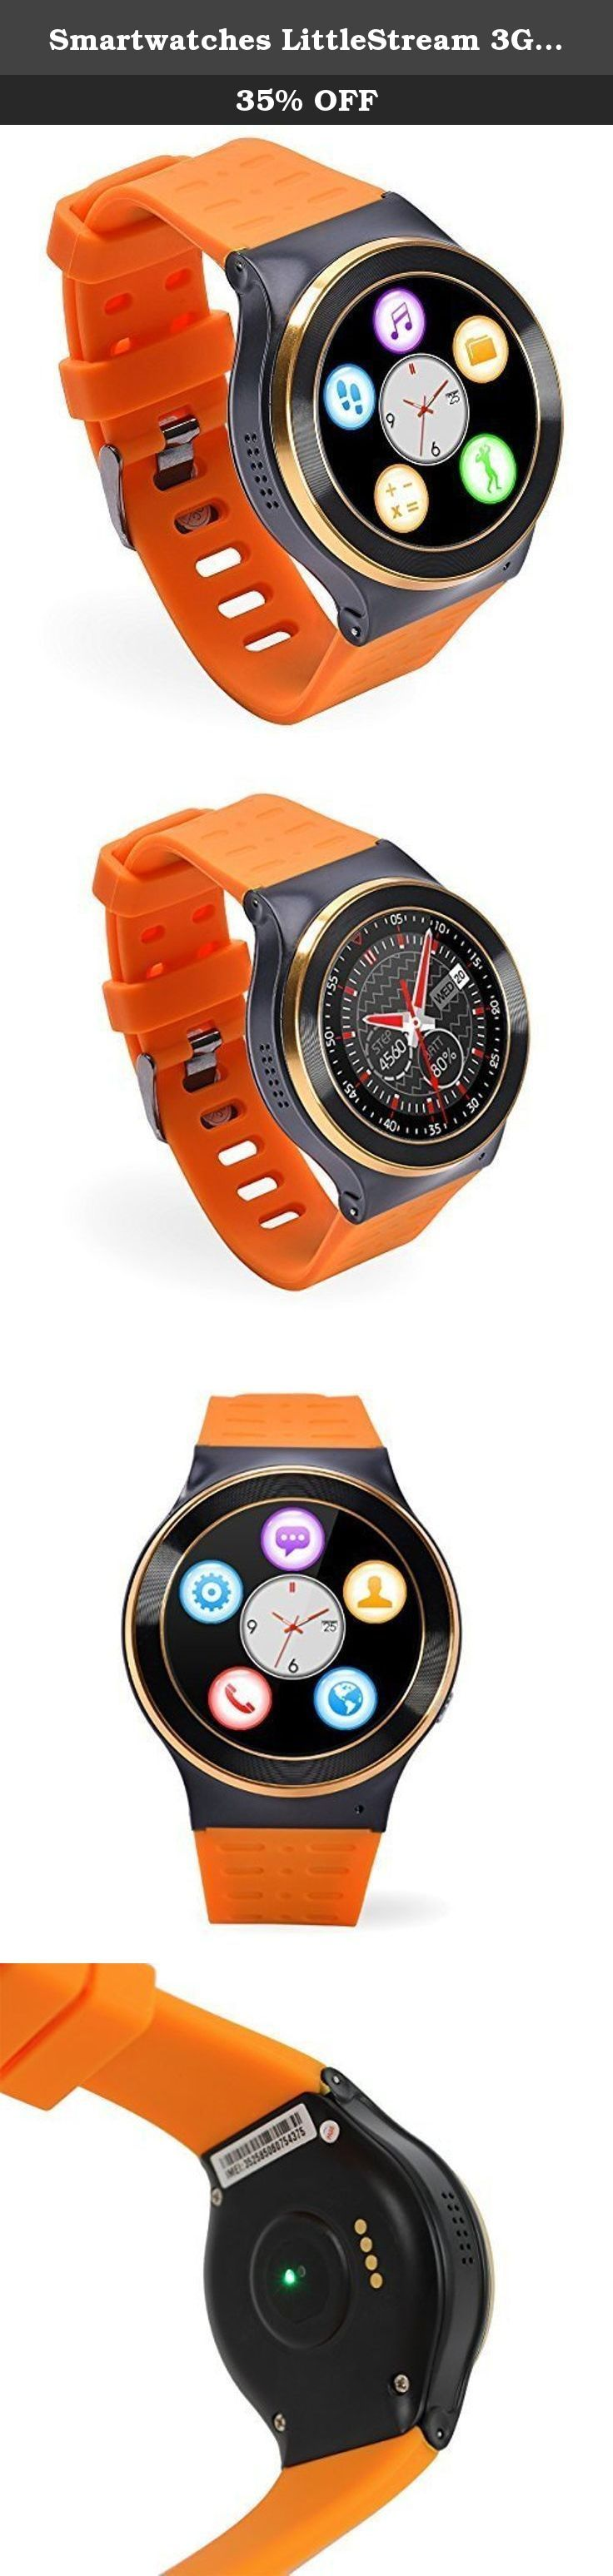 Smartwatches LittleStream 3G Android smart watches smart watch Orange. 1.3G Android smart watches; Andrews Android OS 5.1, Android Smartphone.MTK6580 The function equal to 1.3G quad-core CPU. 2.interpolazione of 500 million pixels (200 million physical pixels); Support WIFI wireless Internet access; 2G Support (Band 850 \ 900 \ 1800 \ 1900) 3G (WCDMA 2100/850). 3.schermo 1:54 capacitive multi-touch, high-definition 320x320 resolution IPS screen; Capacity: RAM: 512 MB, the capacity ROM: 4…